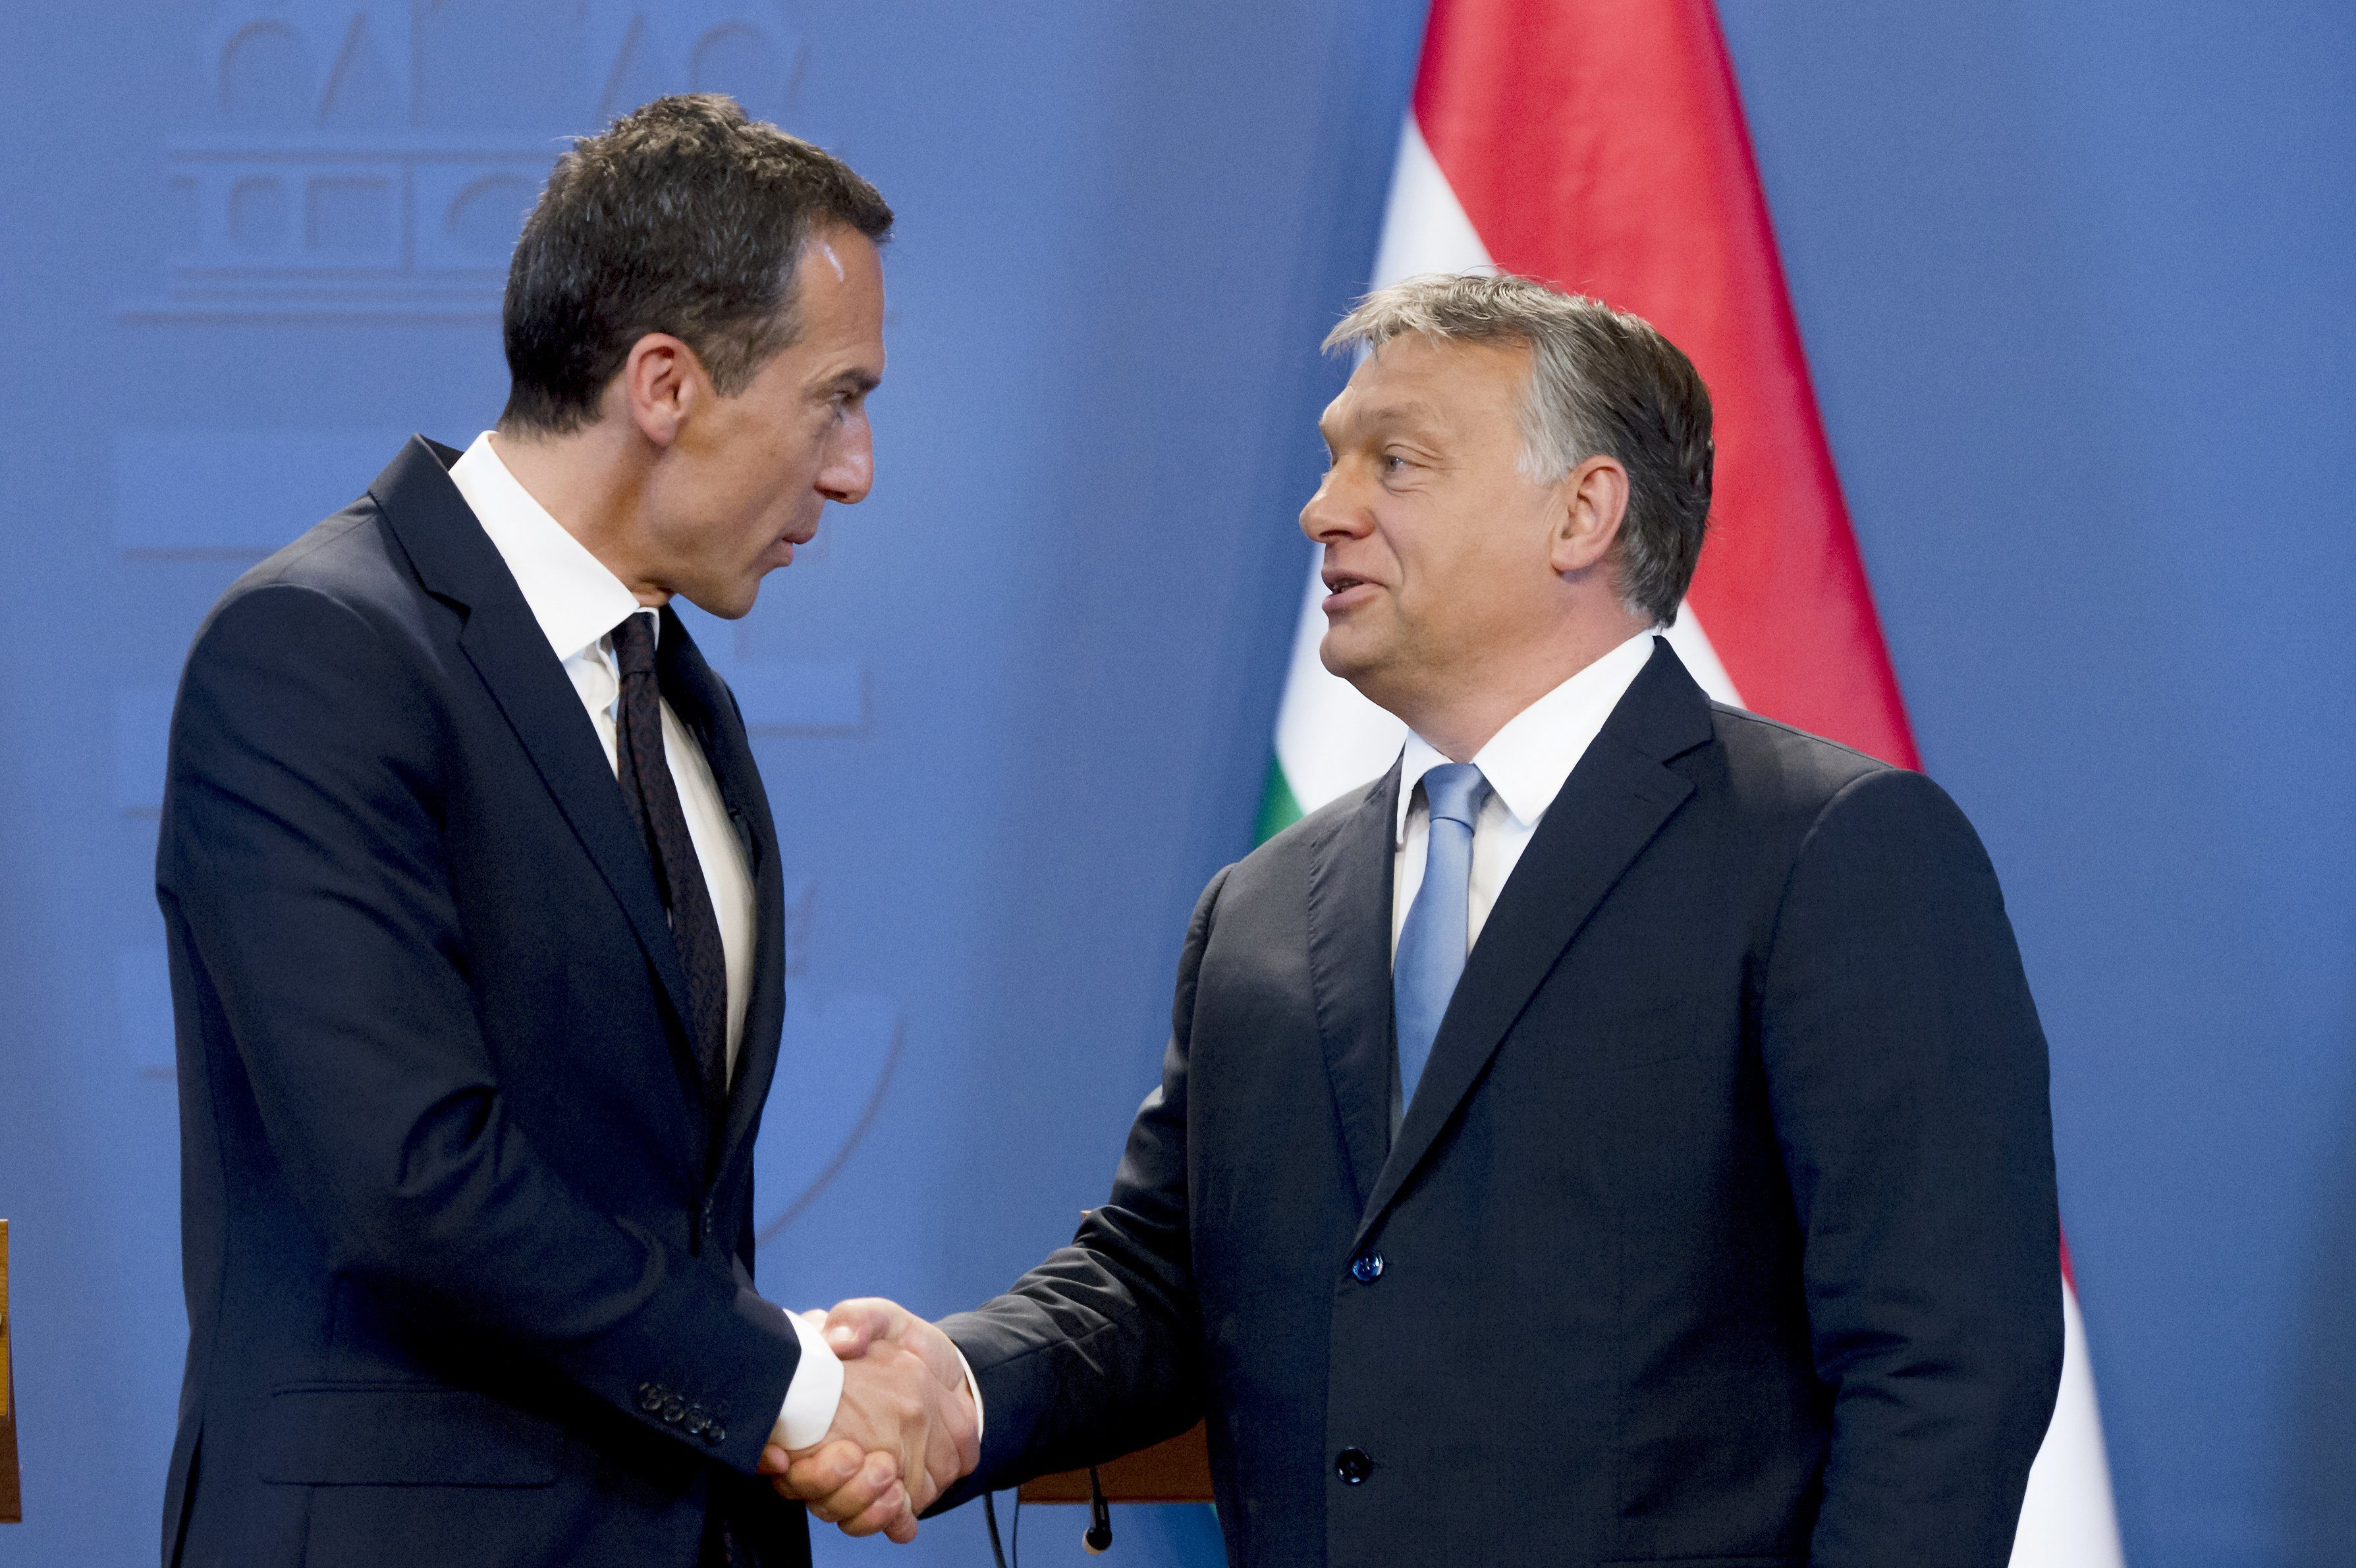 Austrian Federal Chancellor Christian Kern (L) and Hungarian Prime Minister Viktor Orban (R) shake hands after their joint press conference at the Delegation Room of the Parliament in Budapest, Hungary on July 26 2016